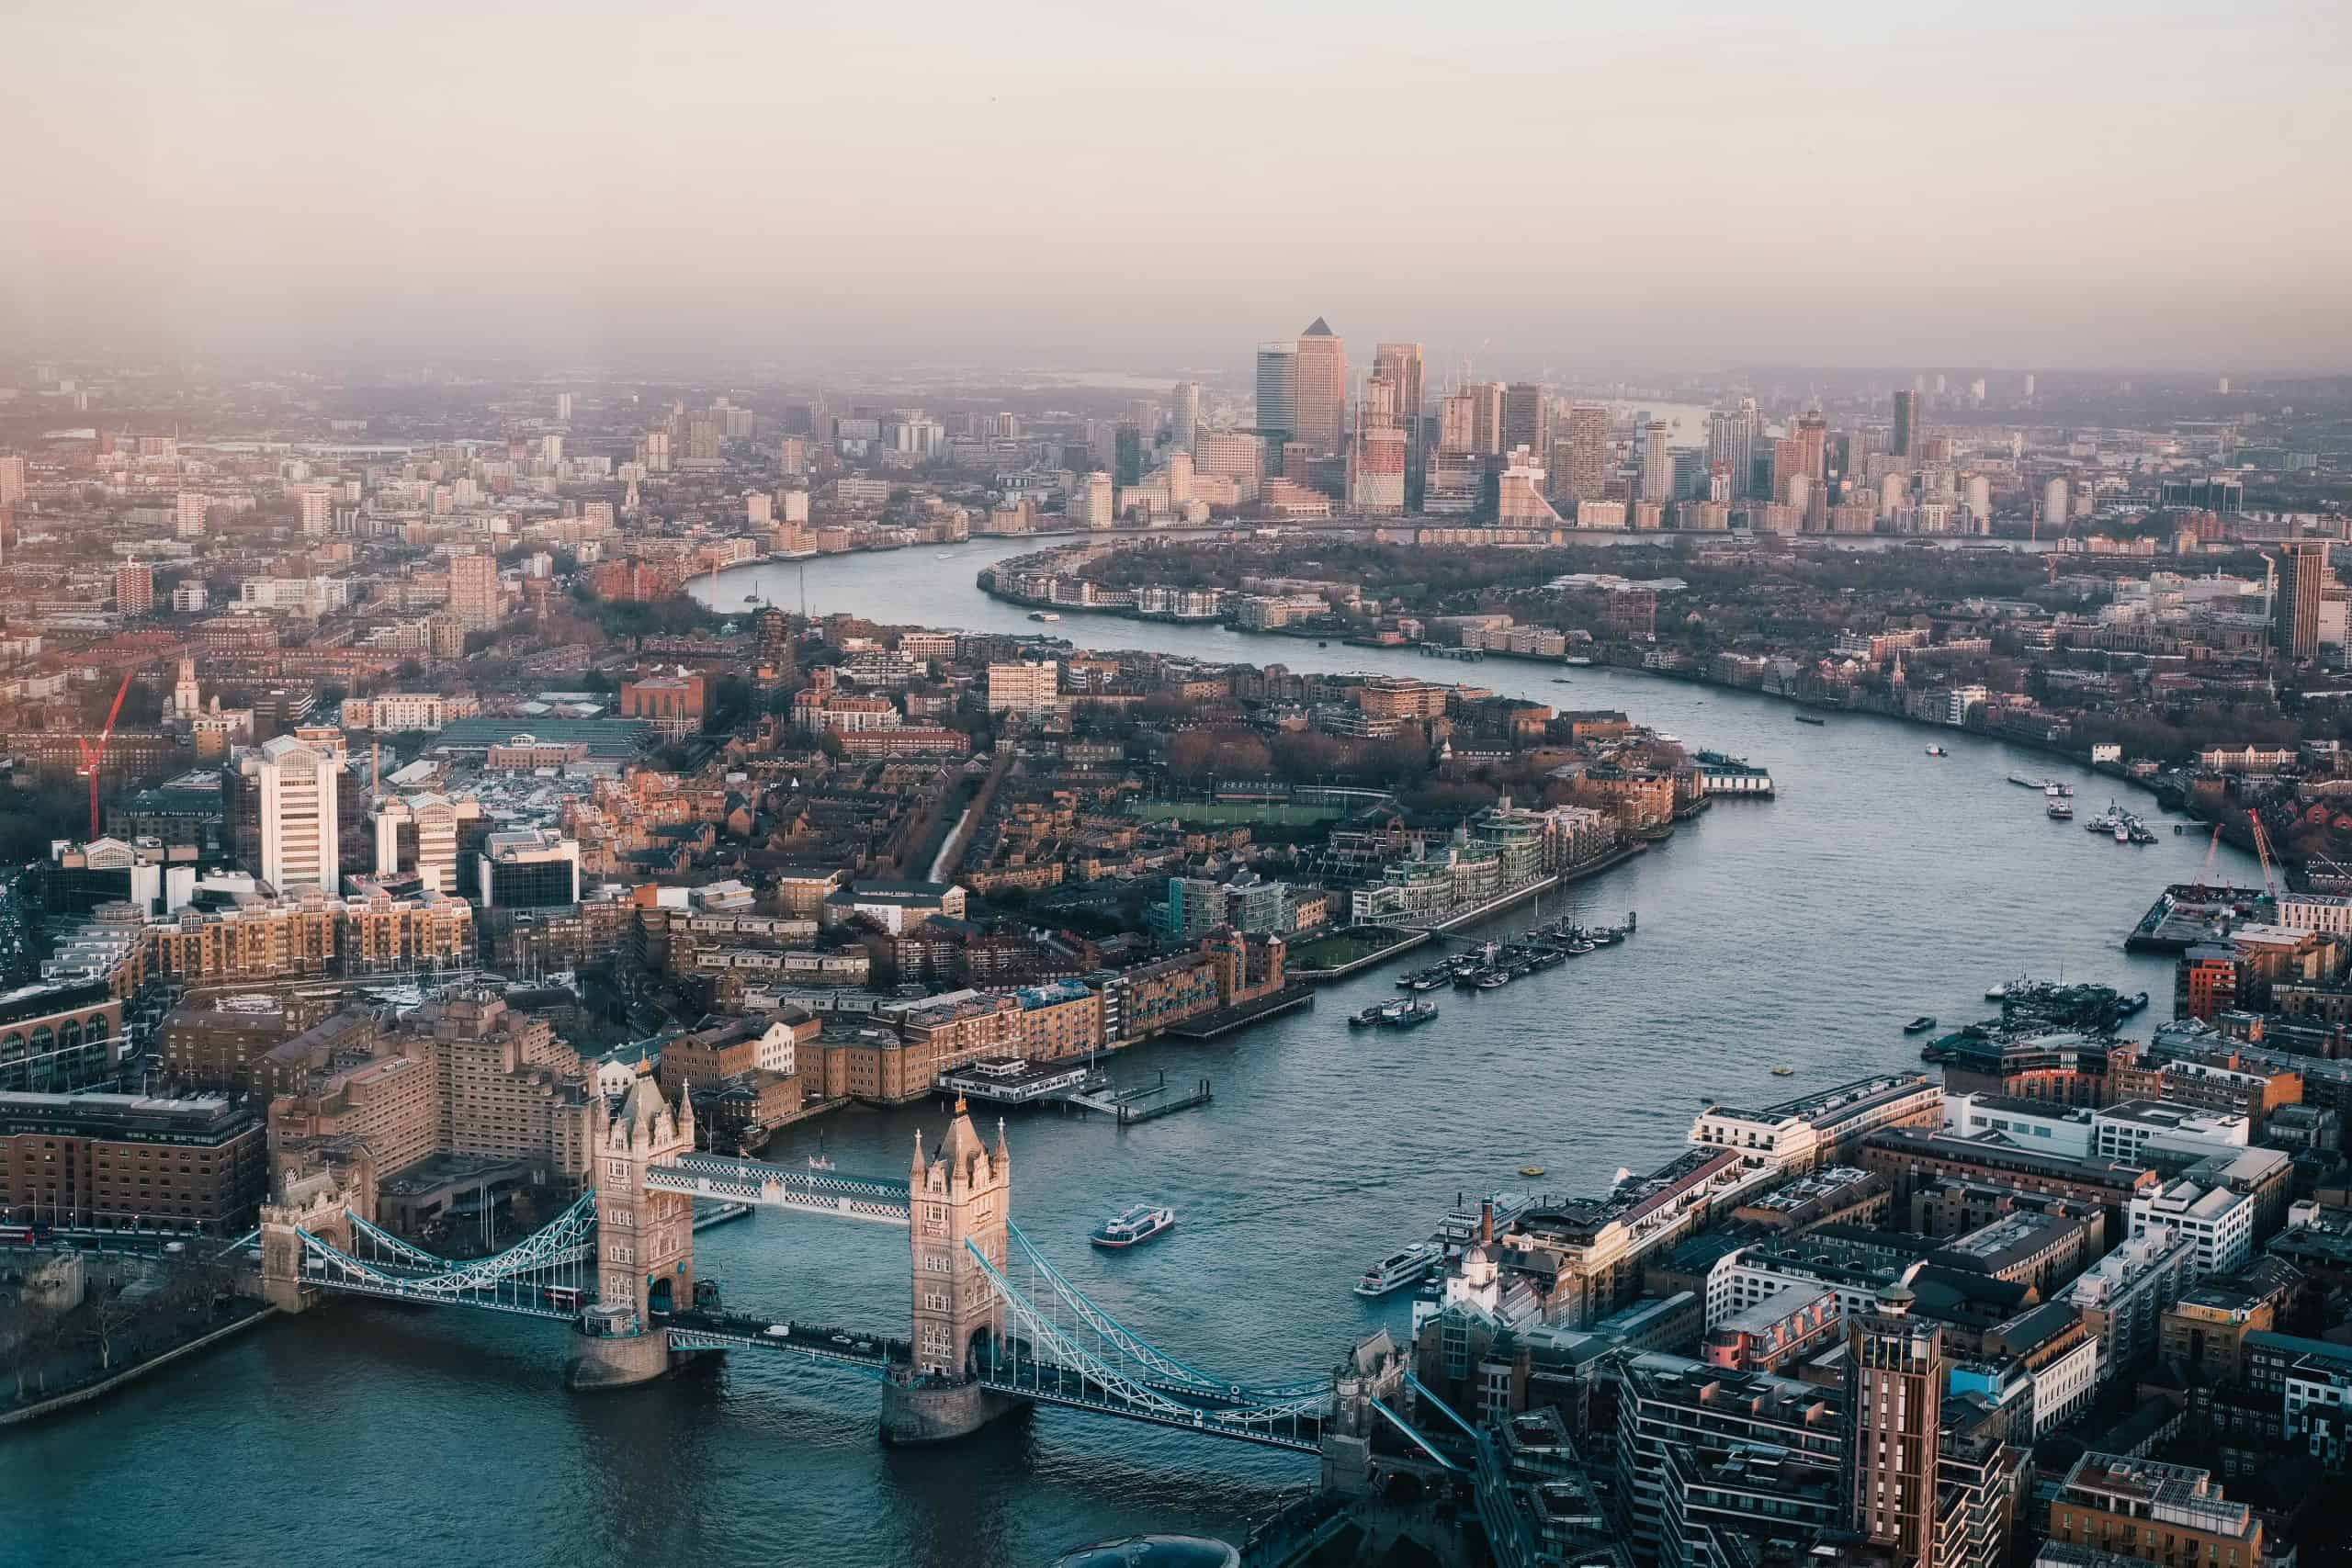 Andare a vivere in Inghilterra - The Shard